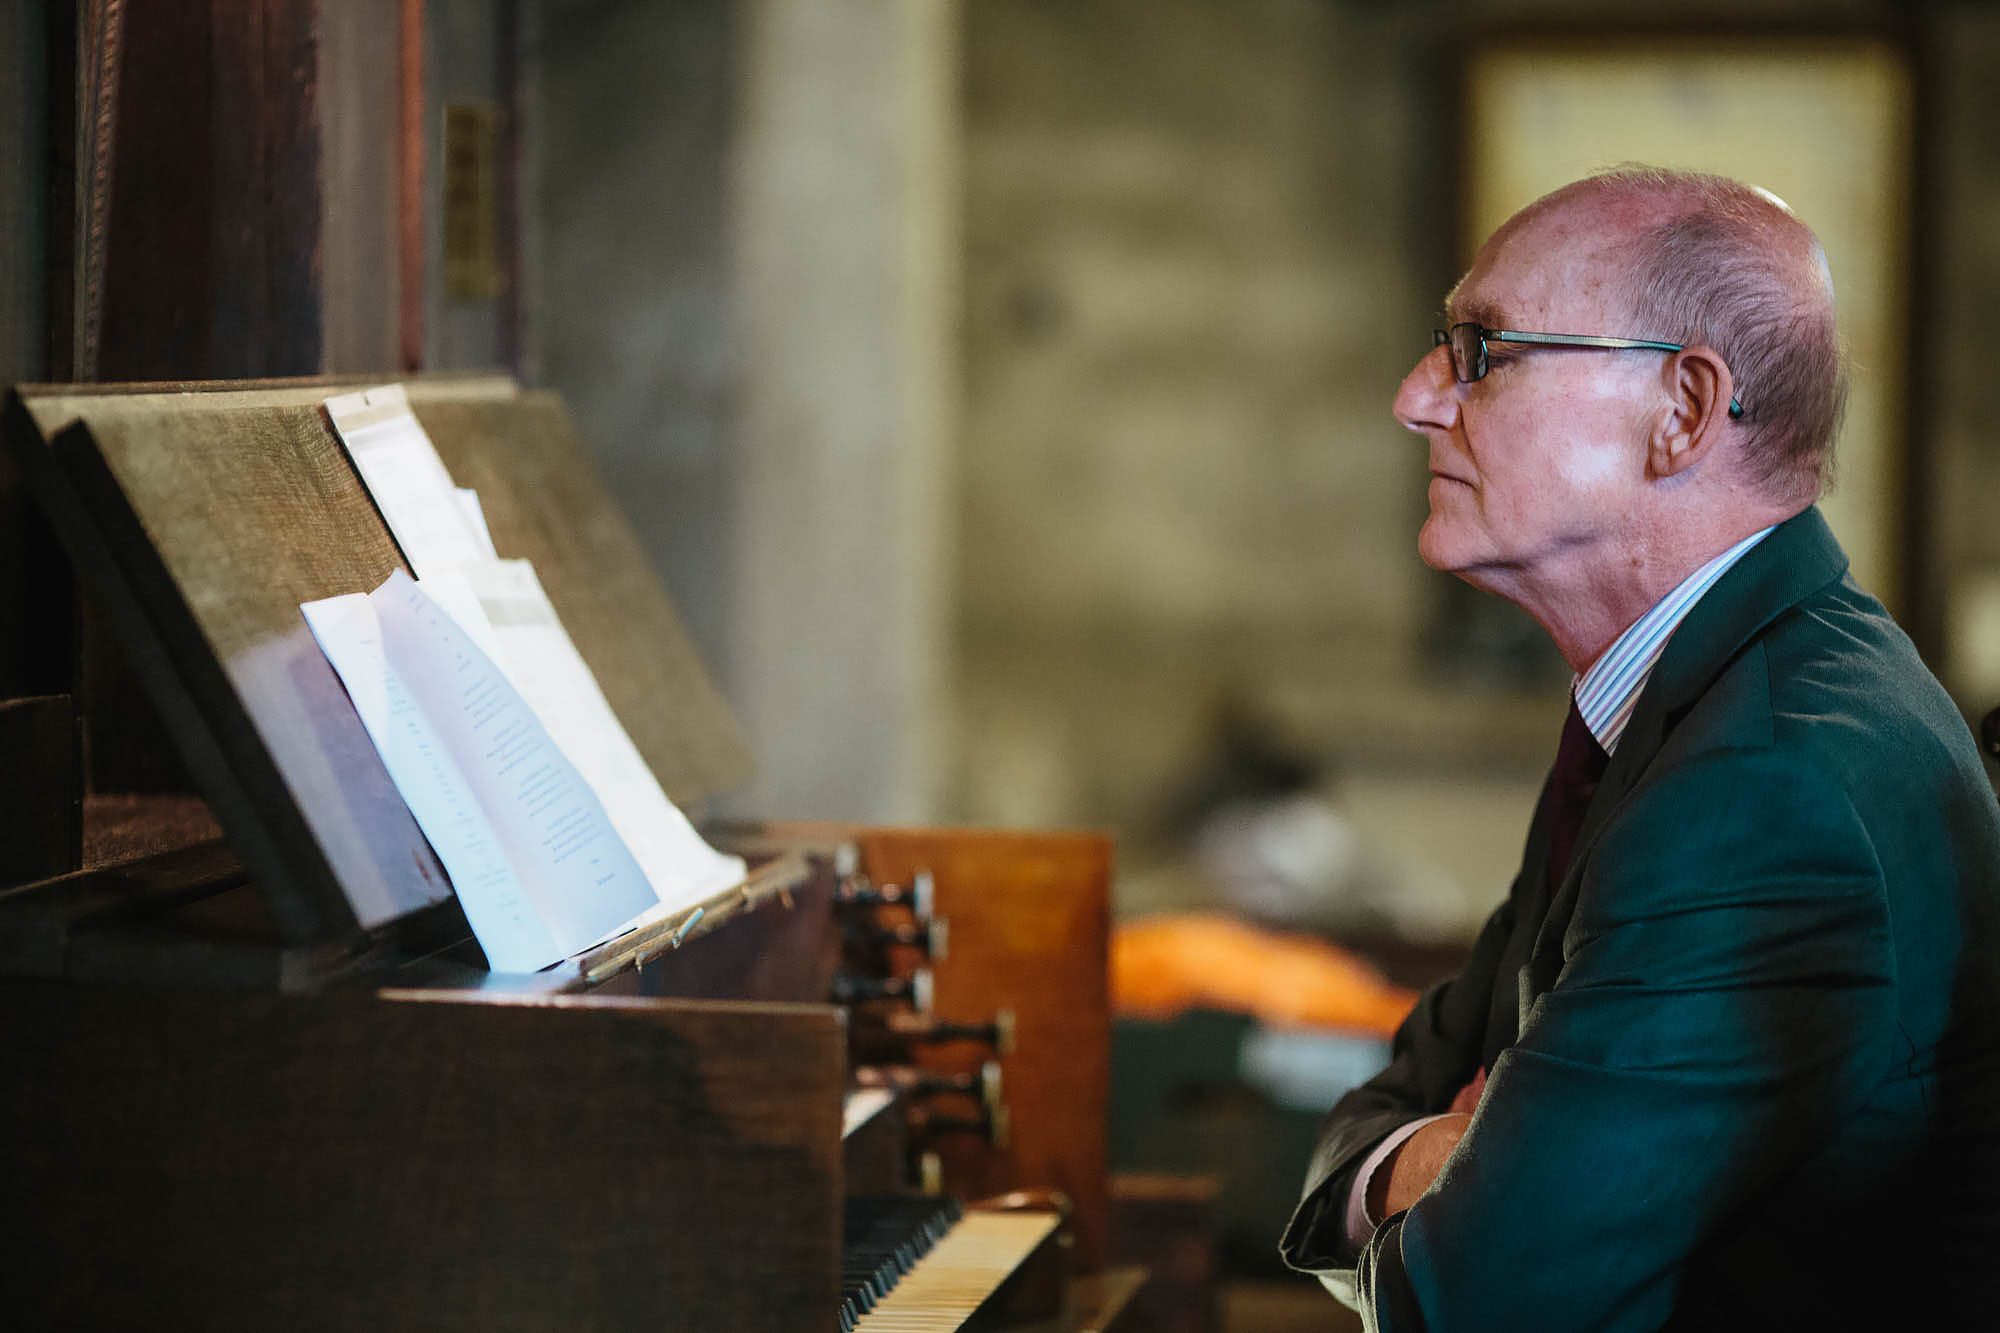 Church organist looks at his music during the wedding ceremony